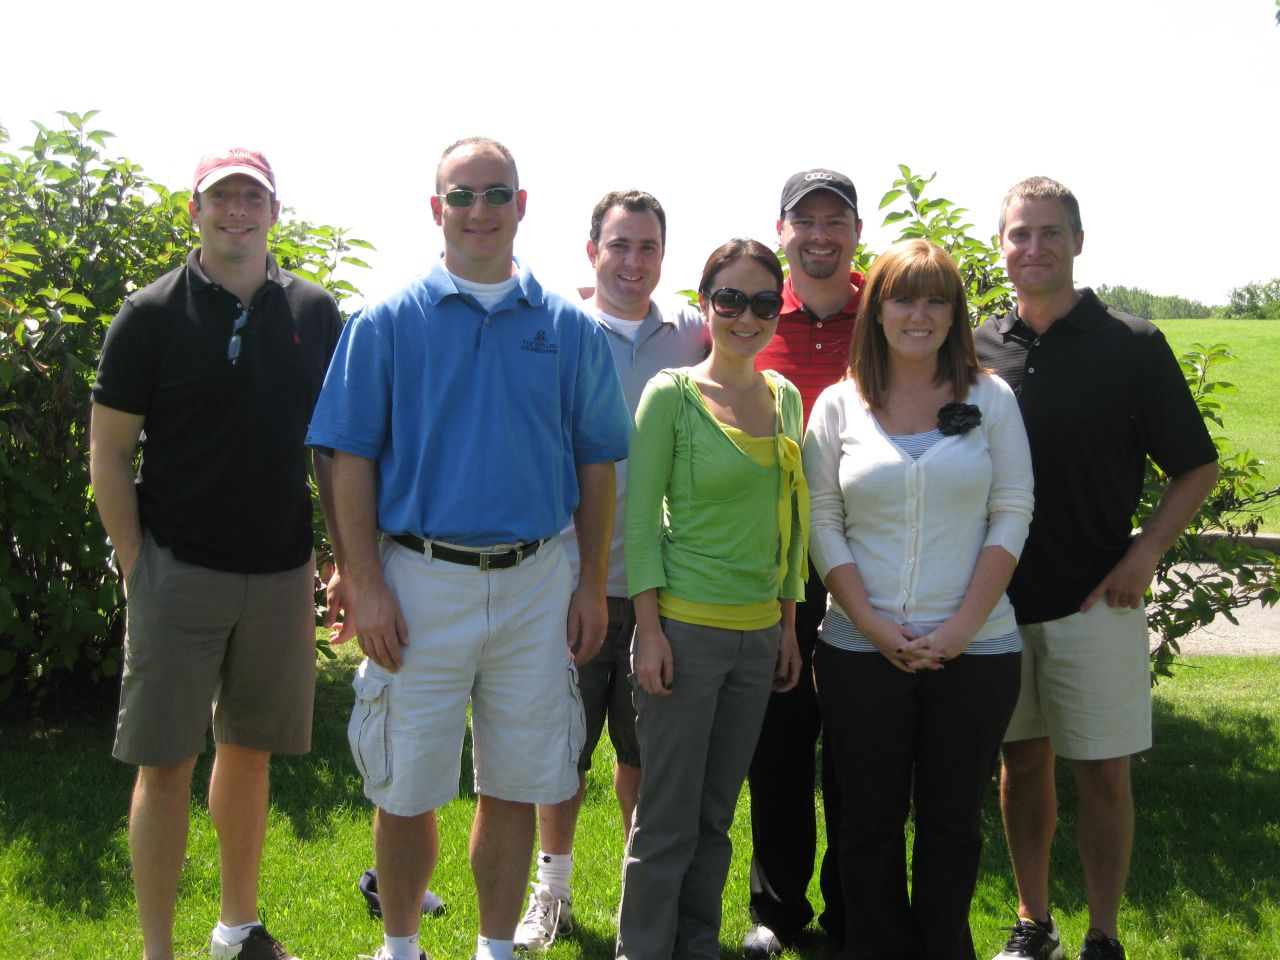 Particpants in the 2009 YLD Golf Outing